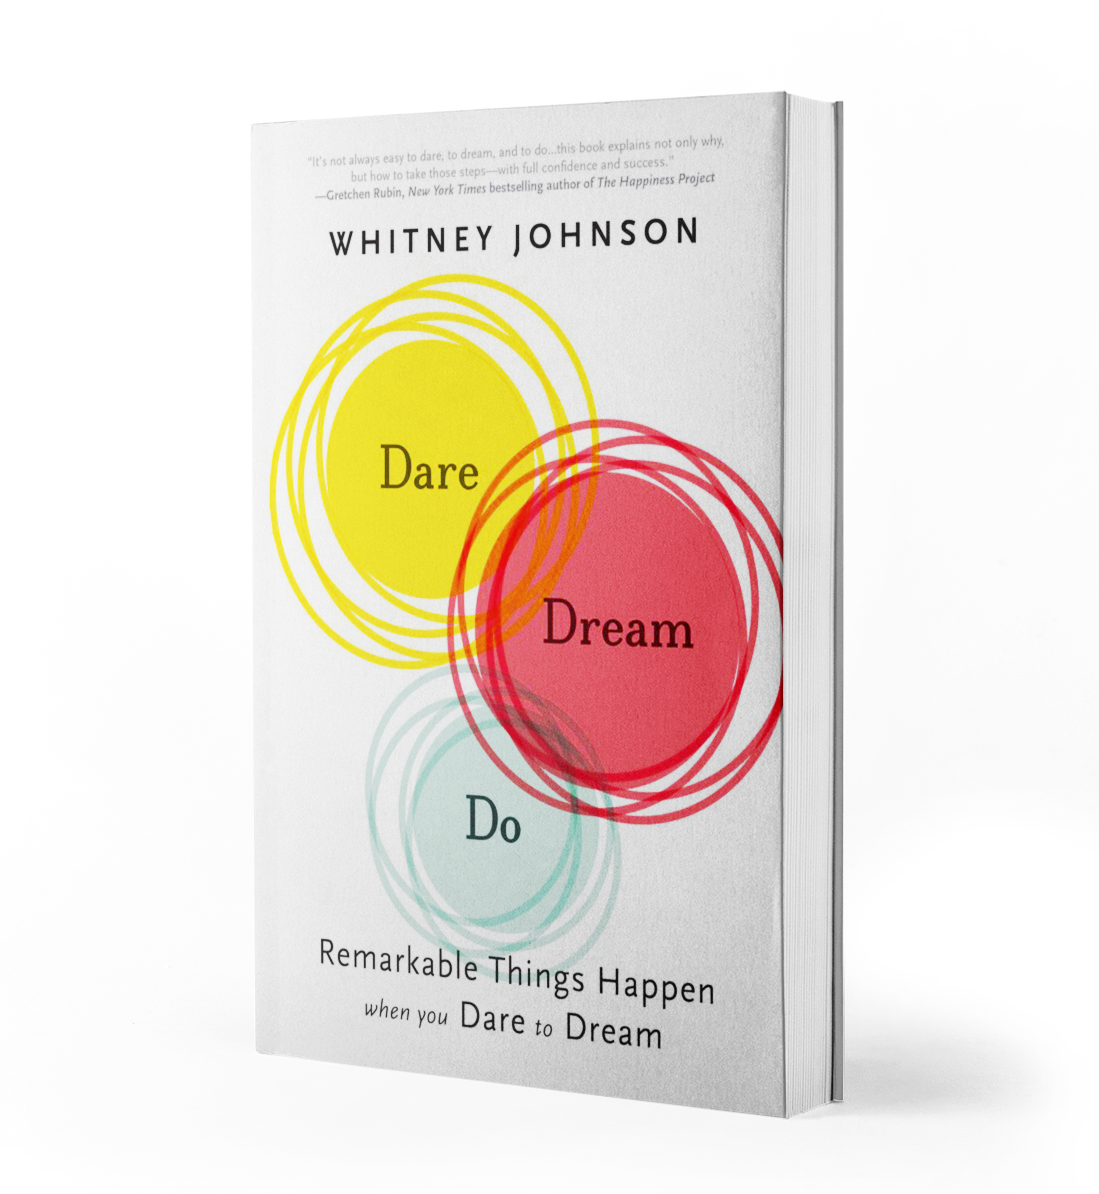 Dare, Dream, Do by Whitney Johnson